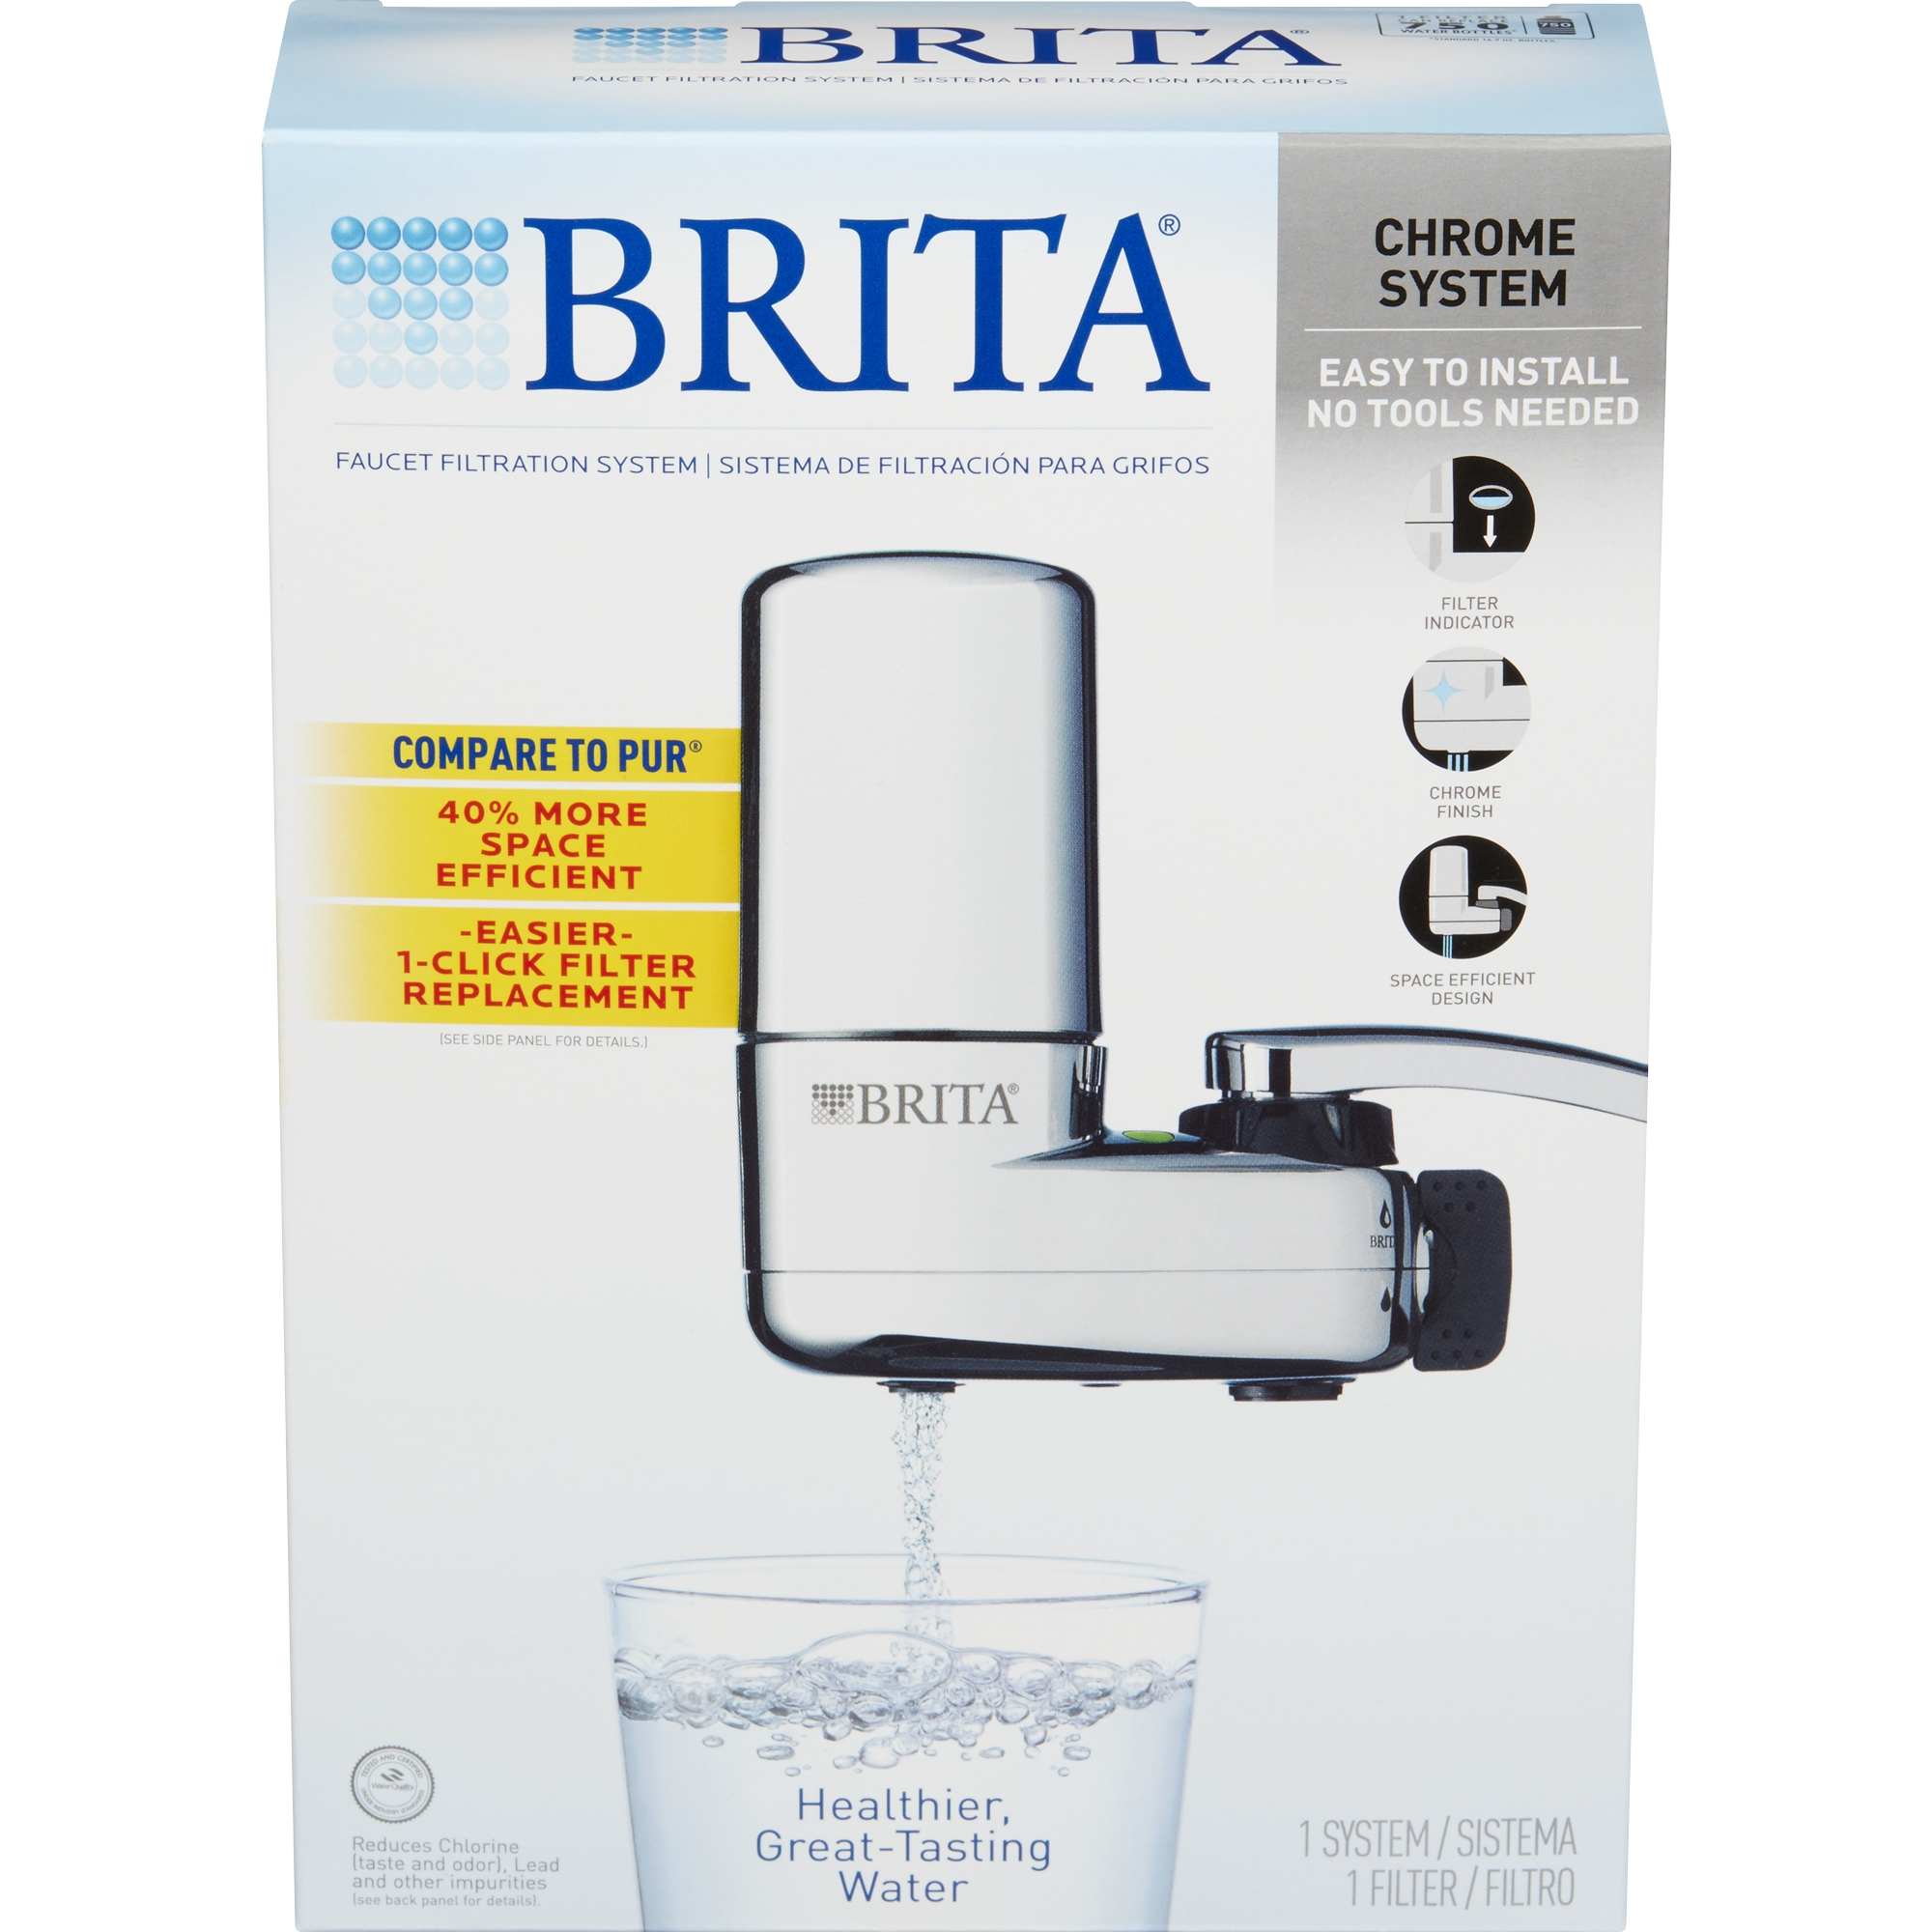 brita what are the prospects for filter sales We also offer salt and replacement filters for your systems as well as an array of water filter softening and water filtration accessories cool off and stay hydrated with purified water from one of our water coolers , water filter pitchers , brita pitchers , brita water filters , pur water filter replacements or another water filter pitcher brand.